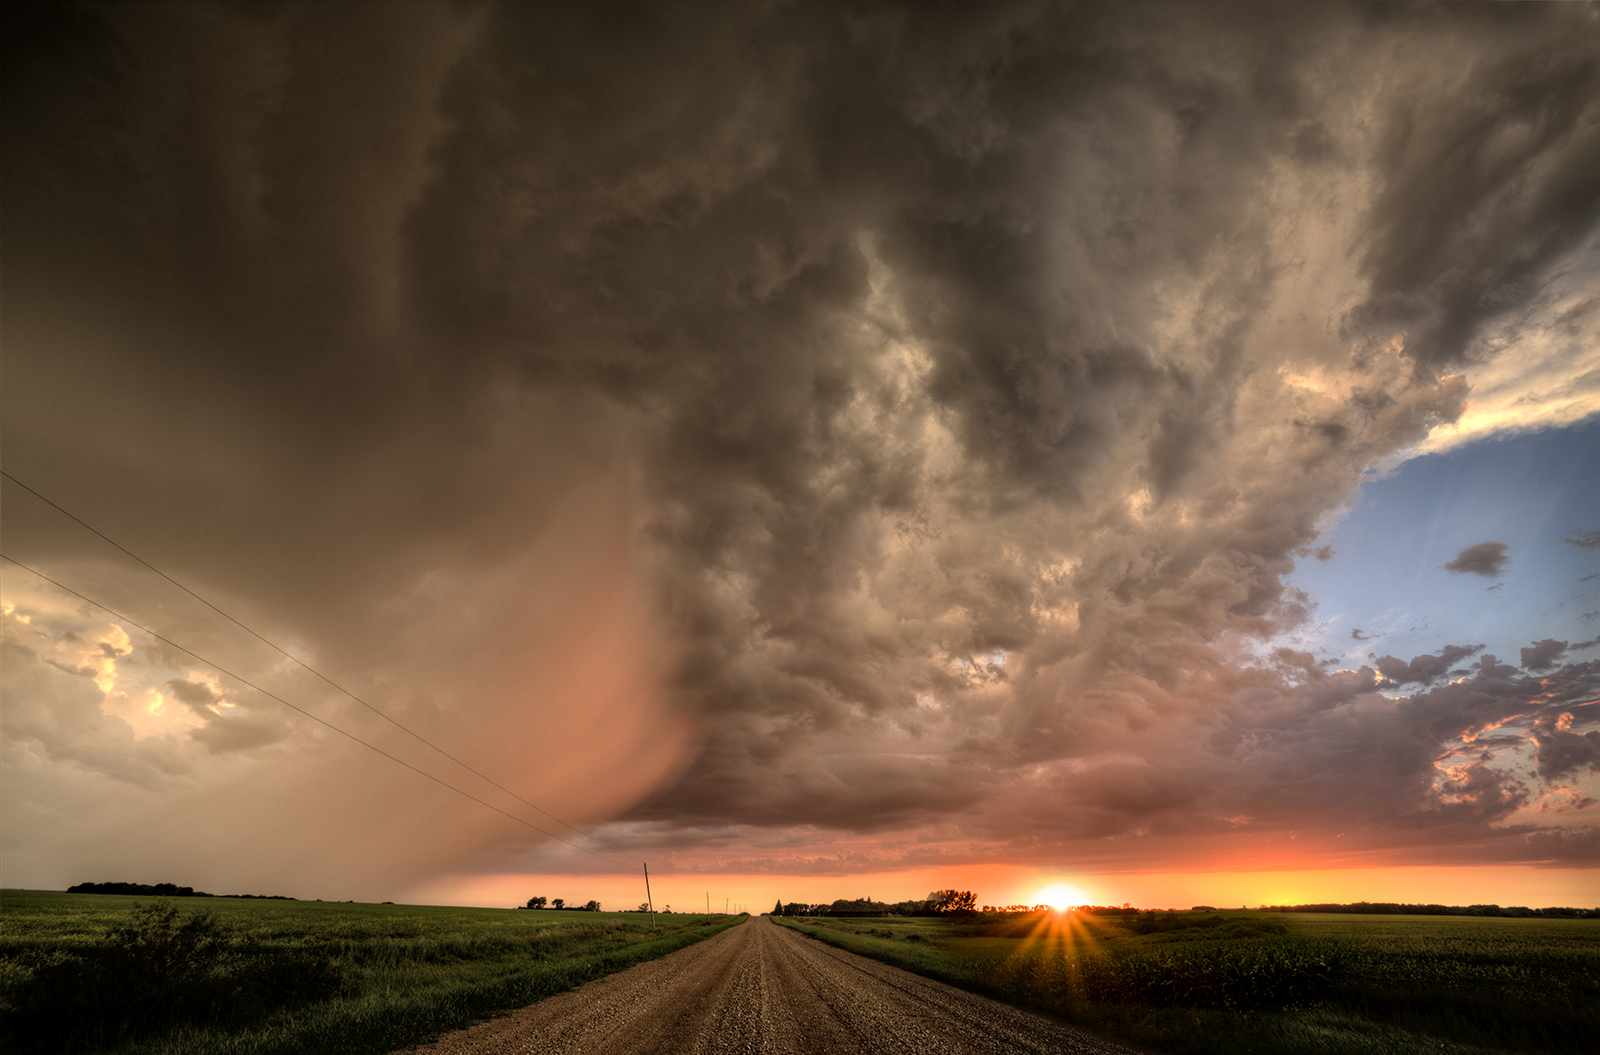 hail storm at sunset in manitoba